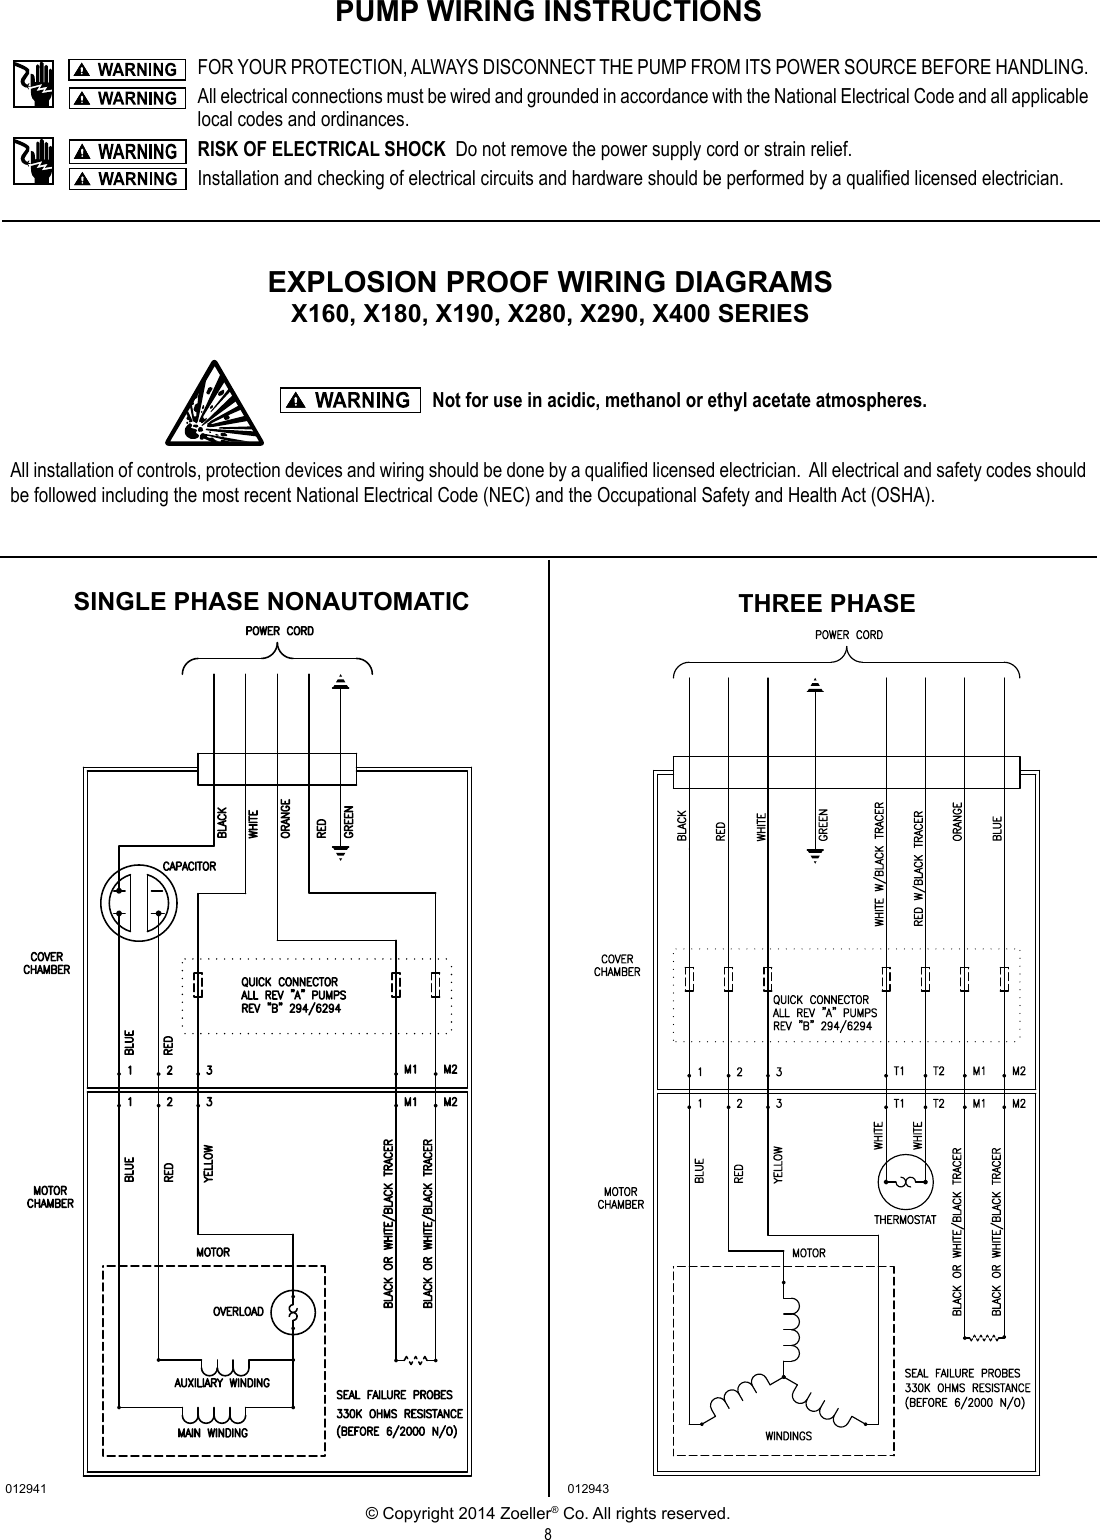 3282 1 zoeller 160 series explosion proof pumps owners manual user  usermanual.wiki